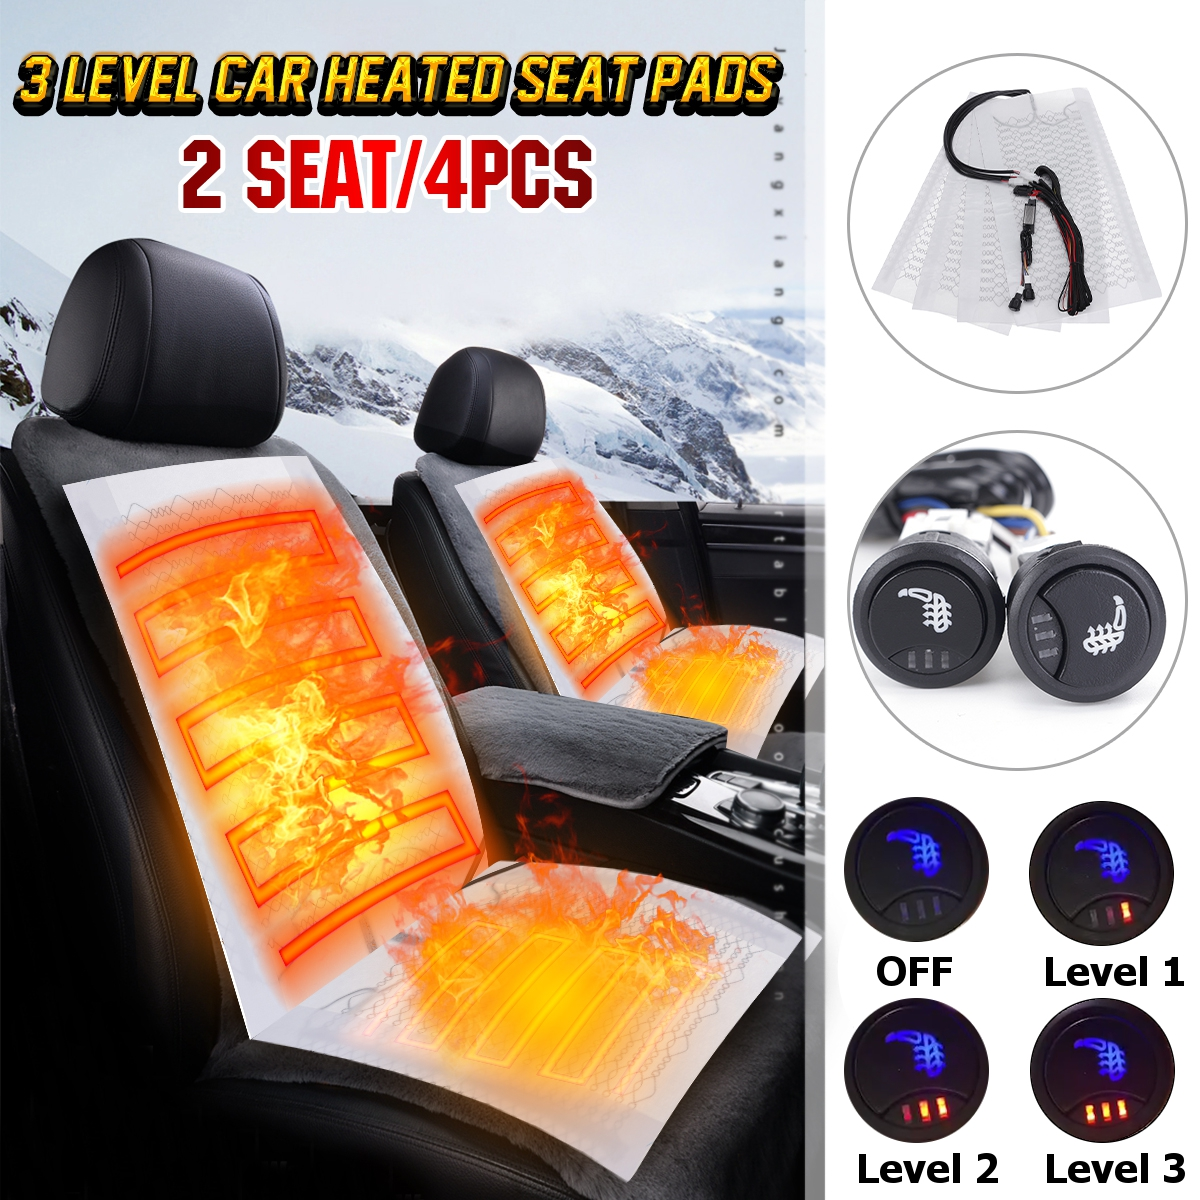 2 Seats 4 Pads Carbon Fiber Car Heated Pads Heating Heater Seat Pads Winter Warmer Seat Covers 2 / 3 Level DC 12V